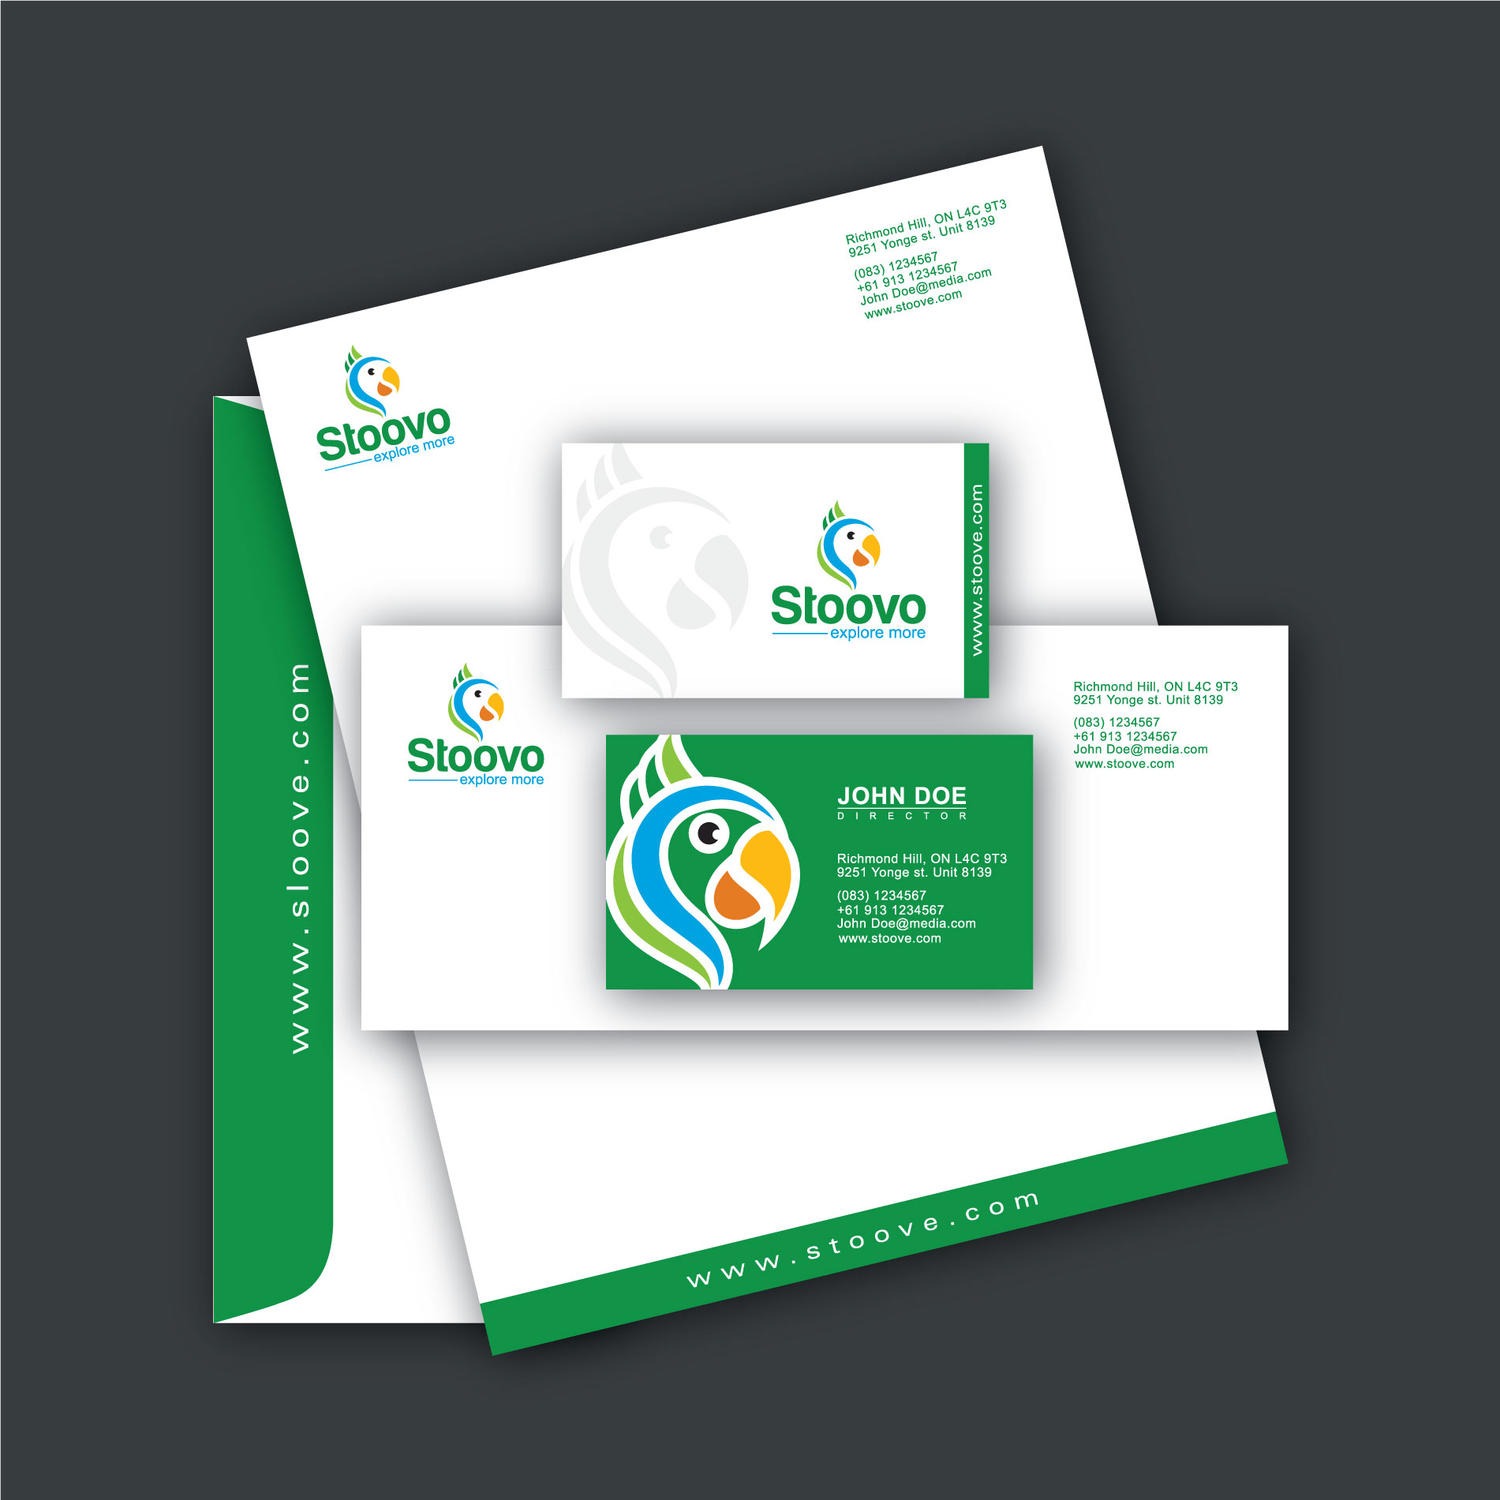 Corporate Stationery Design by sudiptaexpert - 49002